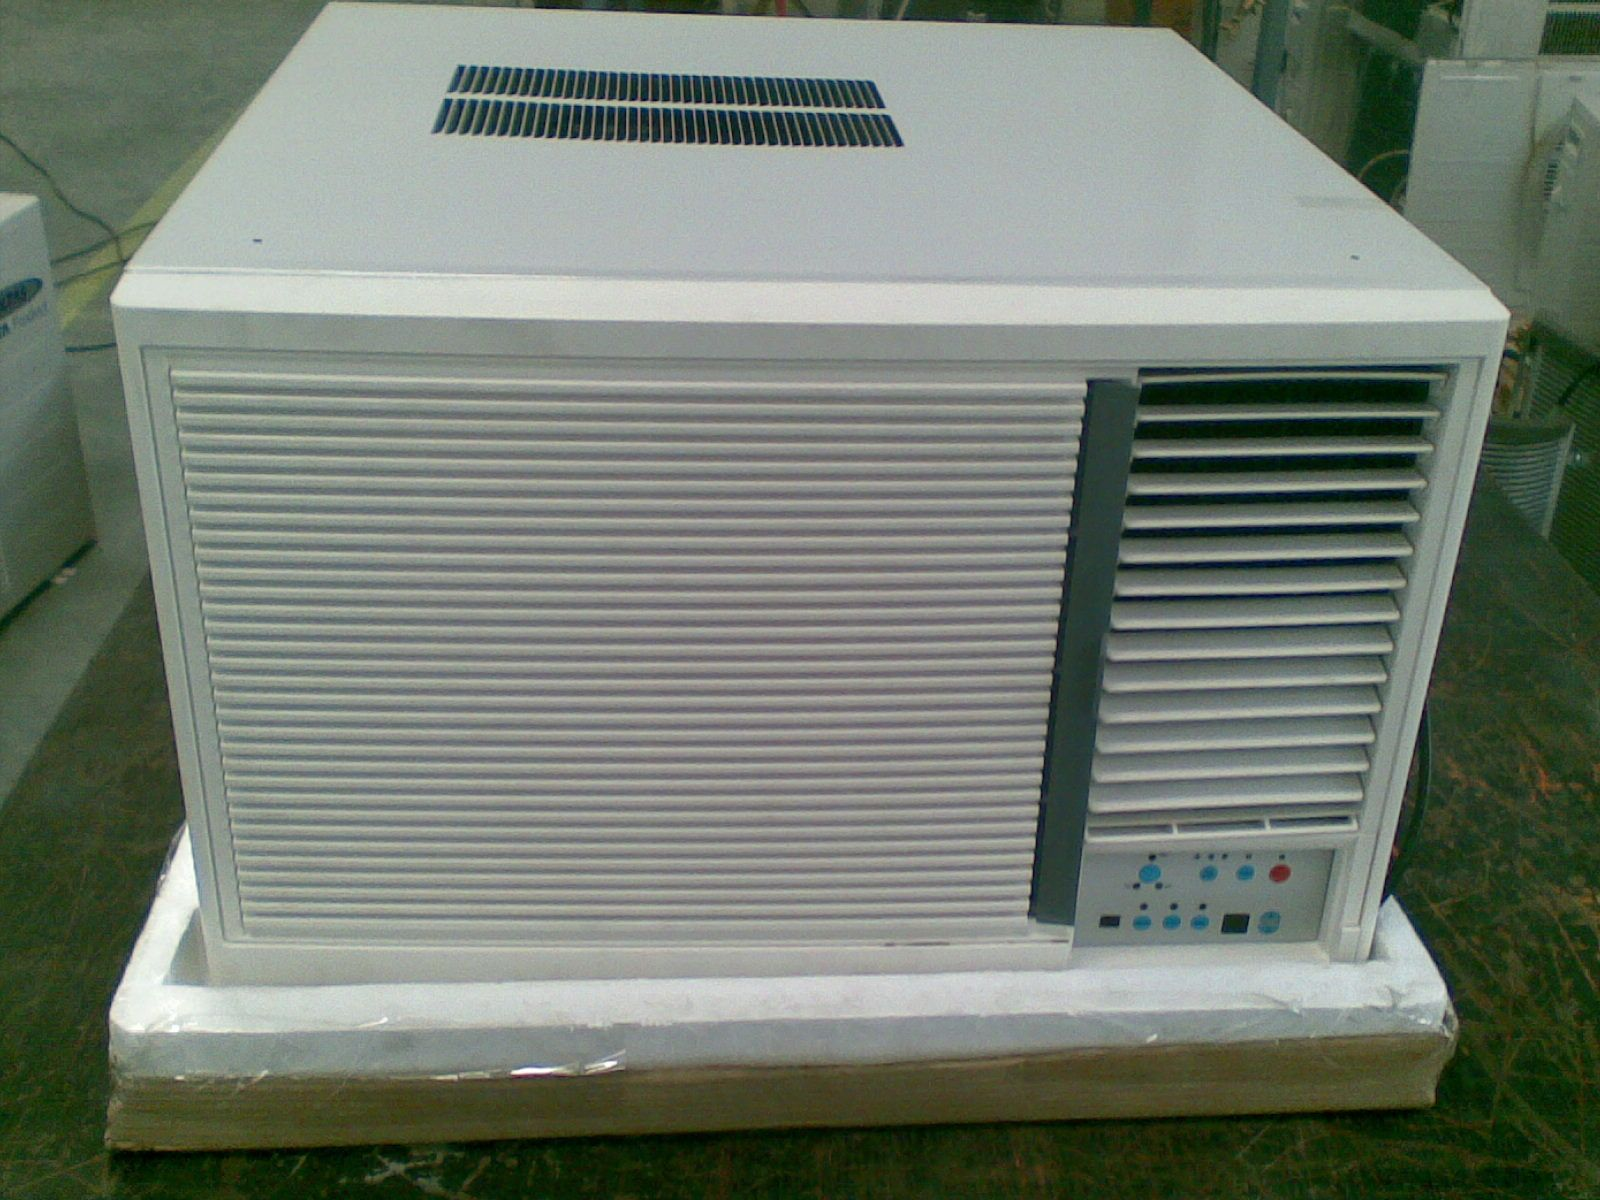 Grill Fitment Check for Window Air Conditioner. Window